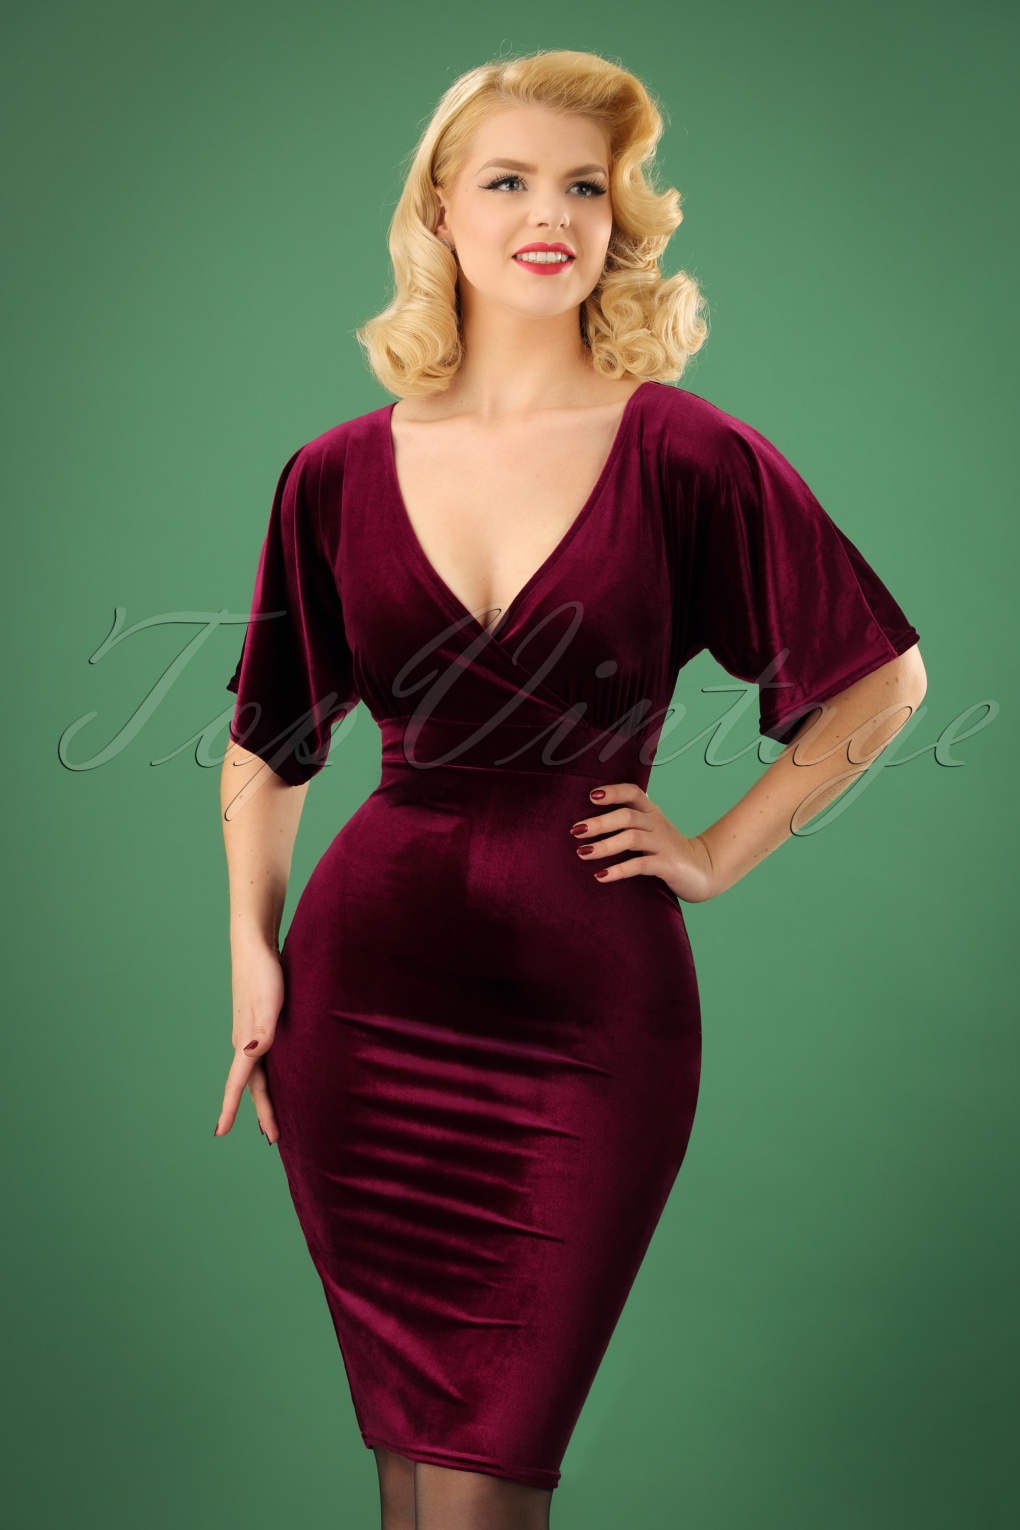 1950s Swing Dresses | 50s Swing Dress 50s Viva Velvet Cross Pencil Dress in Claret £49.05 AT vintagedancer.com